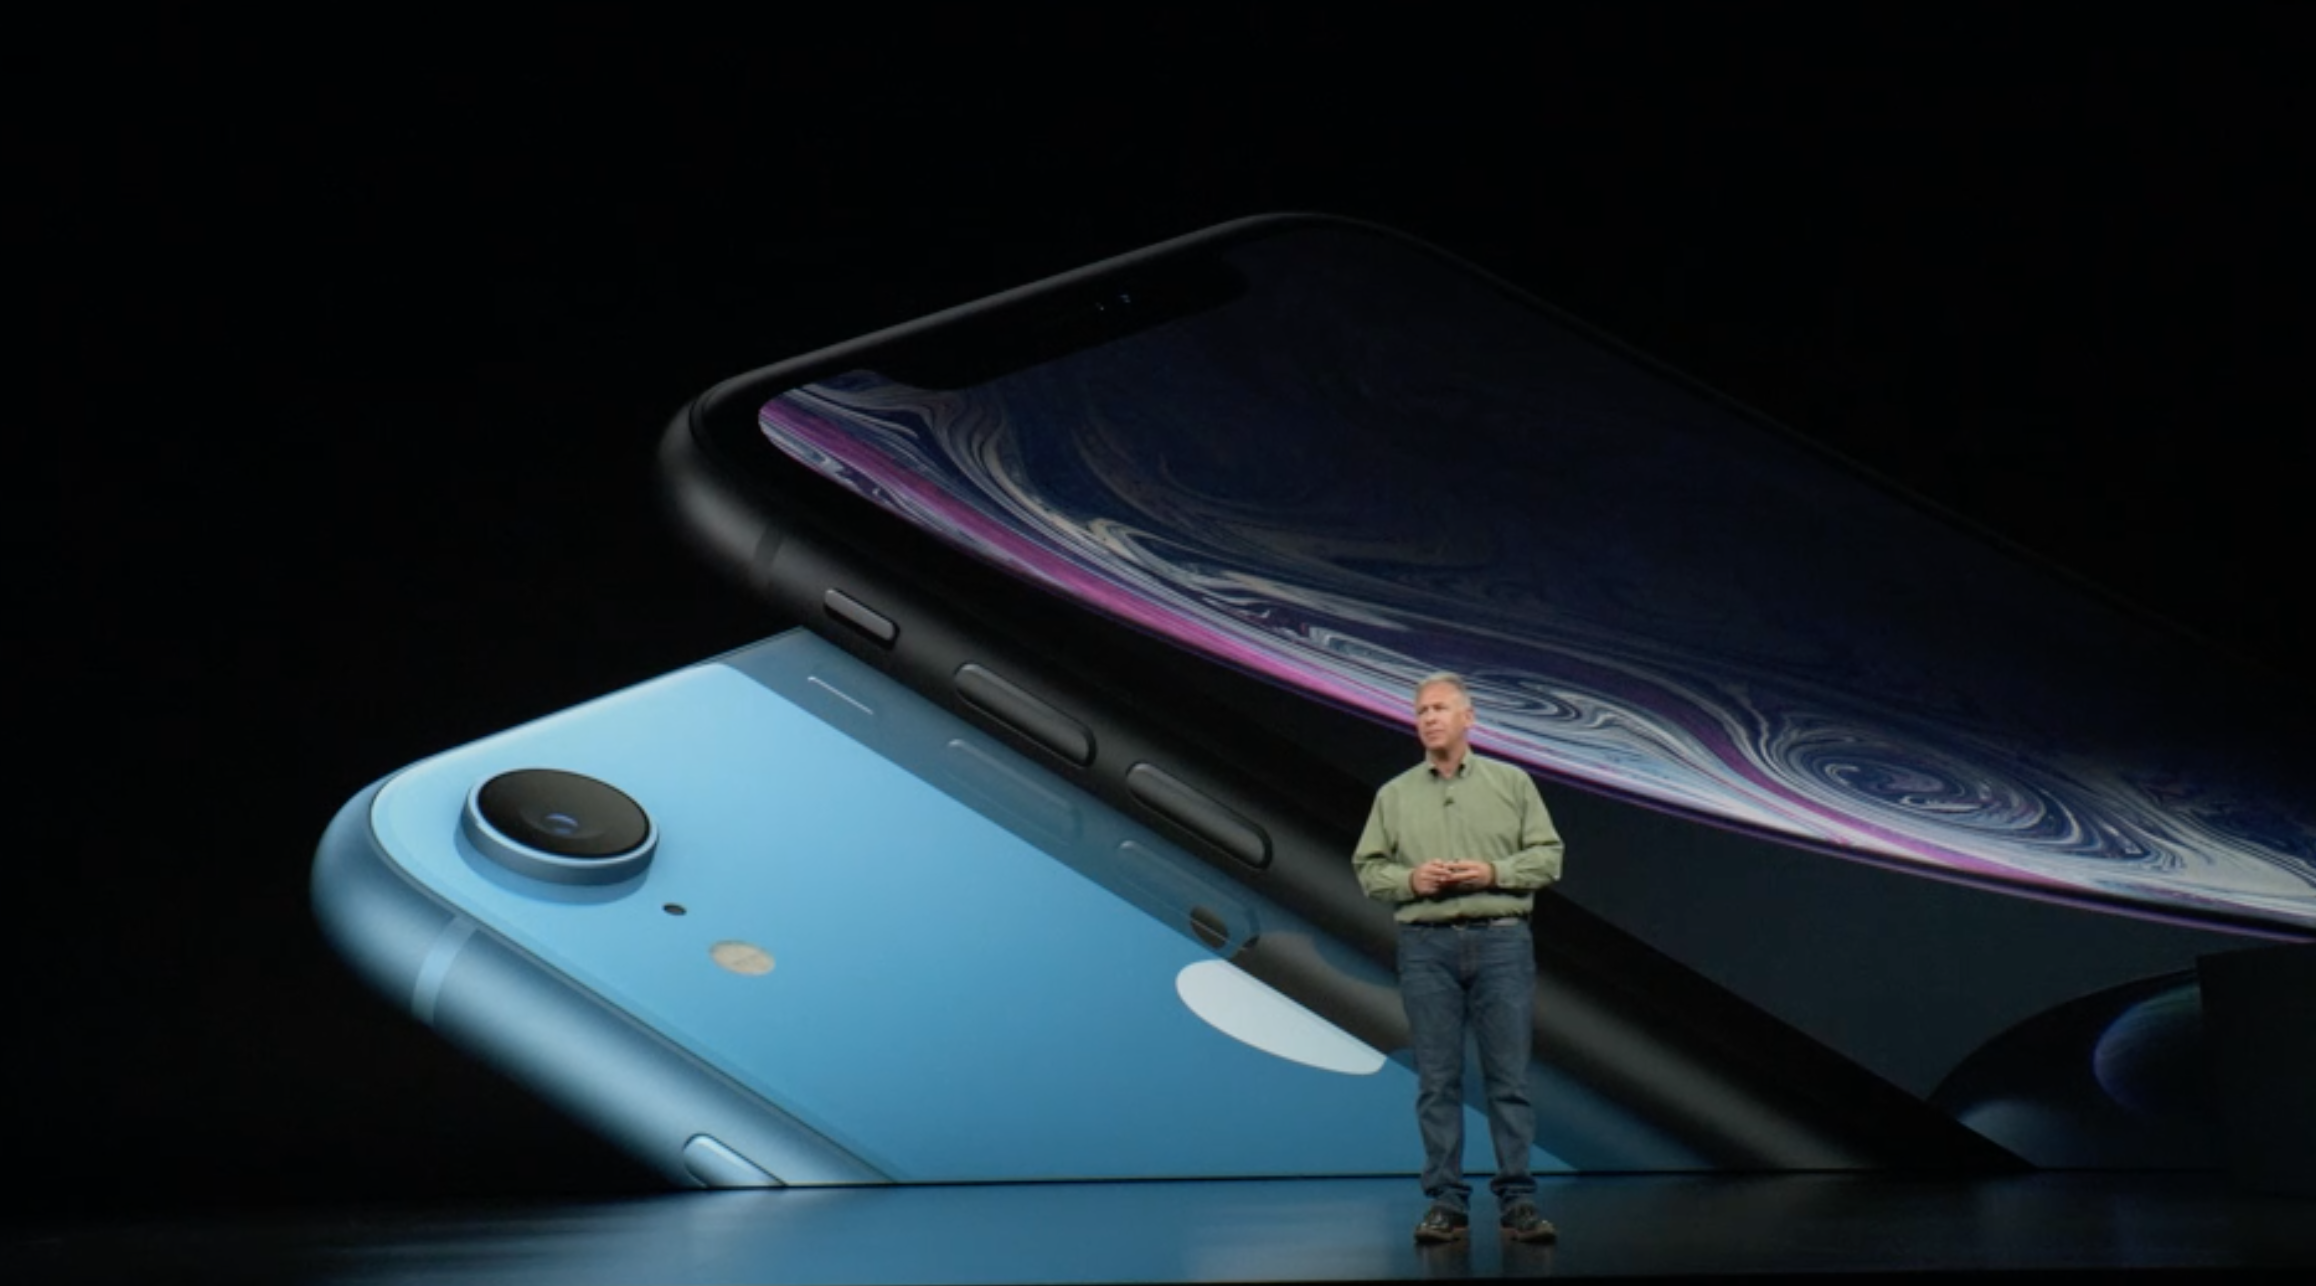 Apple's Phil Schiller on stage to introduce the iPhone XR.